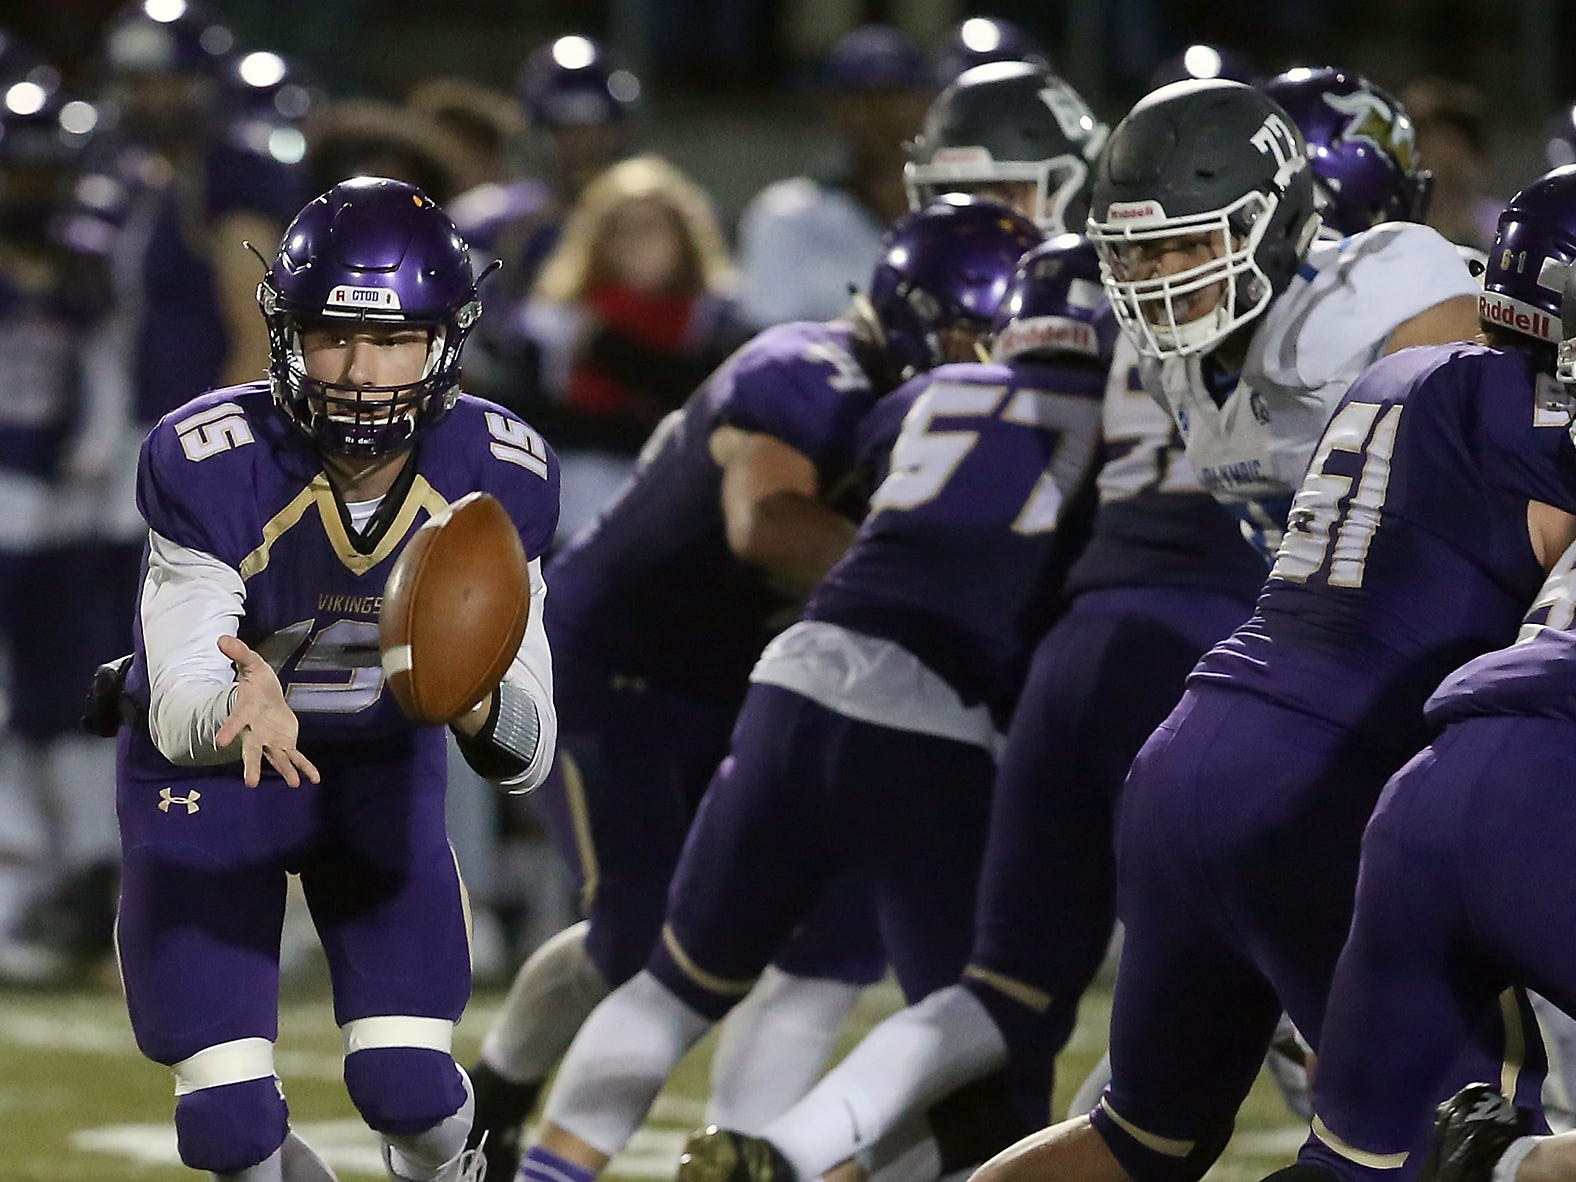 North Kitsap quarterback Andrew Blackmore makes a shovel pass to Clayton Williams against Olympic in Poulsbo on Friday, October 26, 2018.